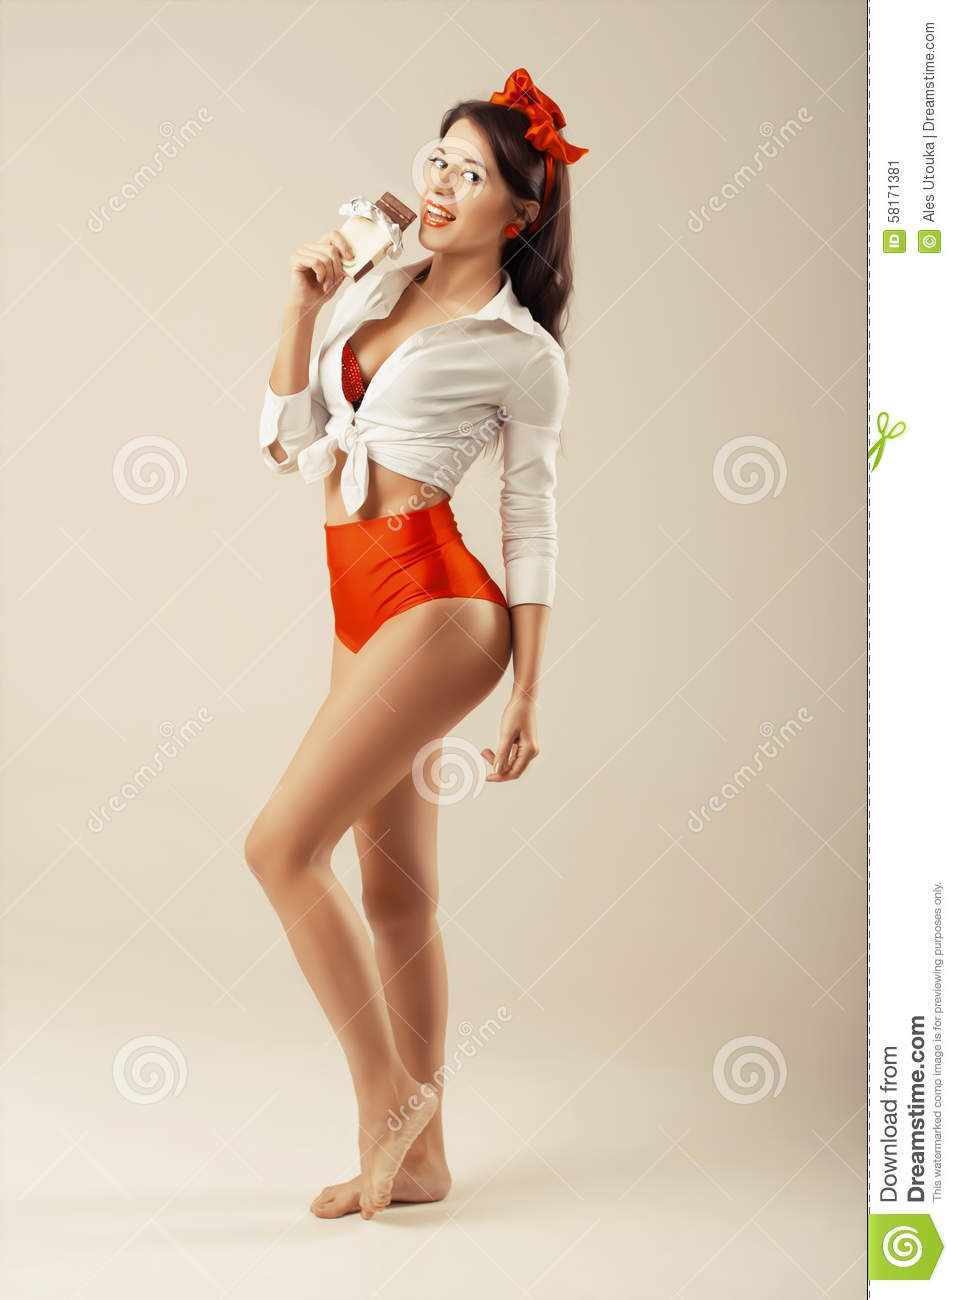 e3ffb8566b8 Pinup girl with chocolate stands in studio. Back to 1950s. retro style